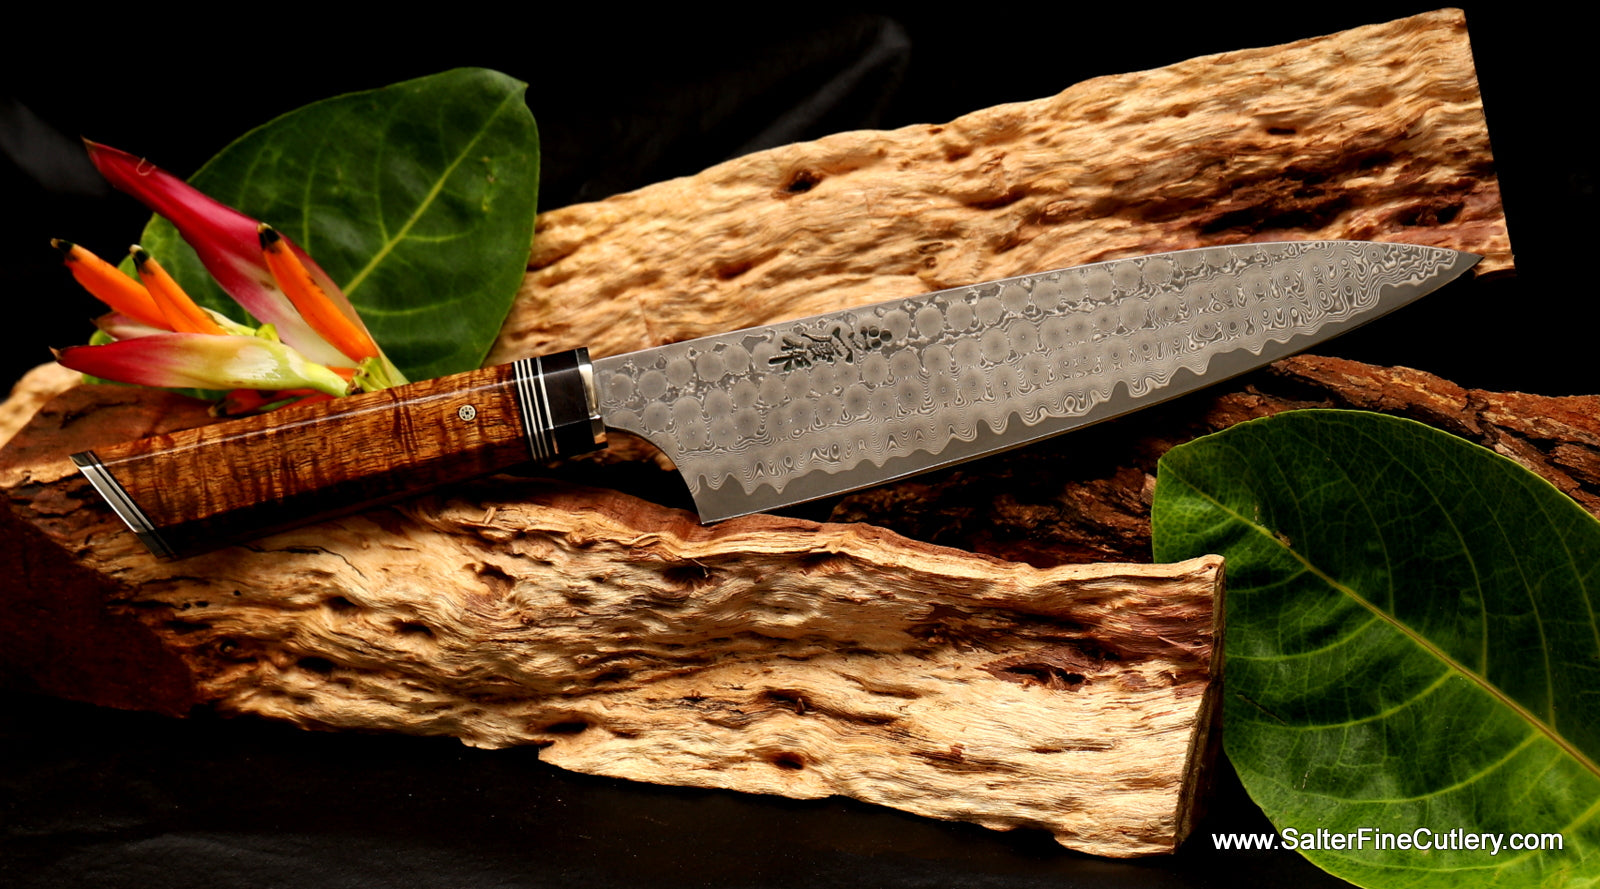 Beautiful handmade chef knife Charybdis design series kitchen knives by Salter Fine Cutlery